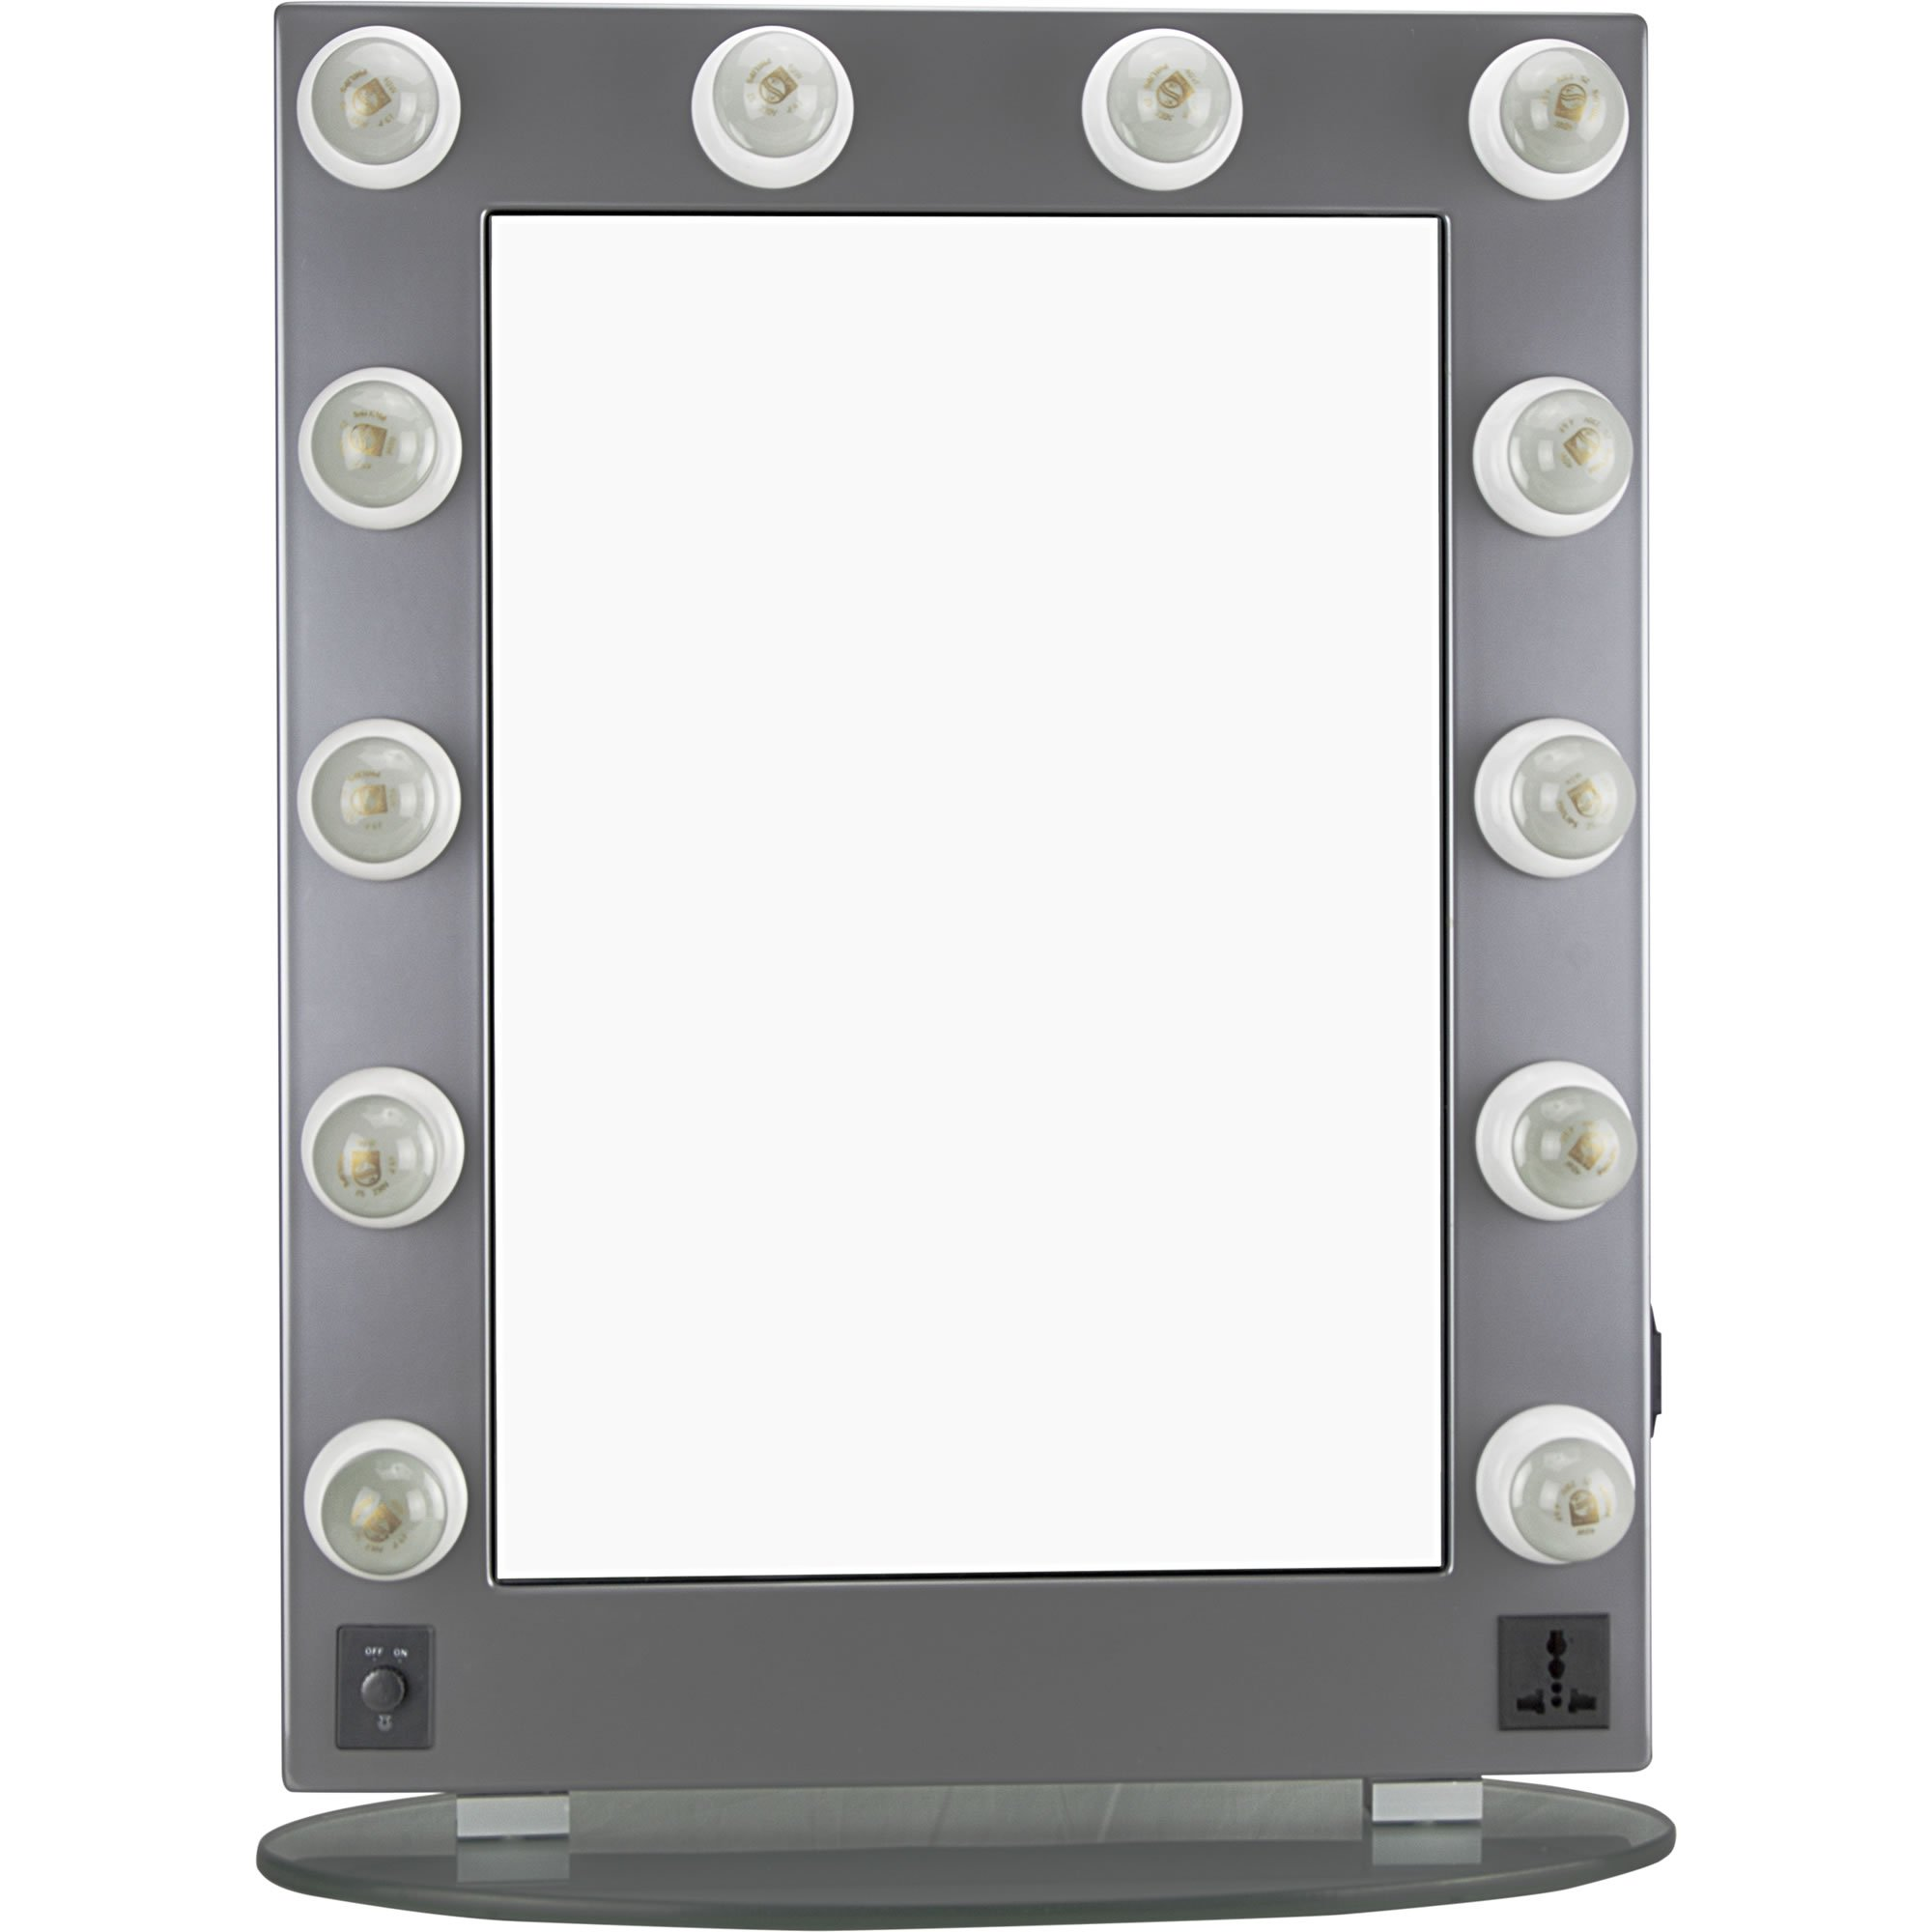 Hiker 12 Dimmer Light Piece Body and Glass Base Hollywood Vanity Makeup Wall Mount Mirror Table Top, Silver